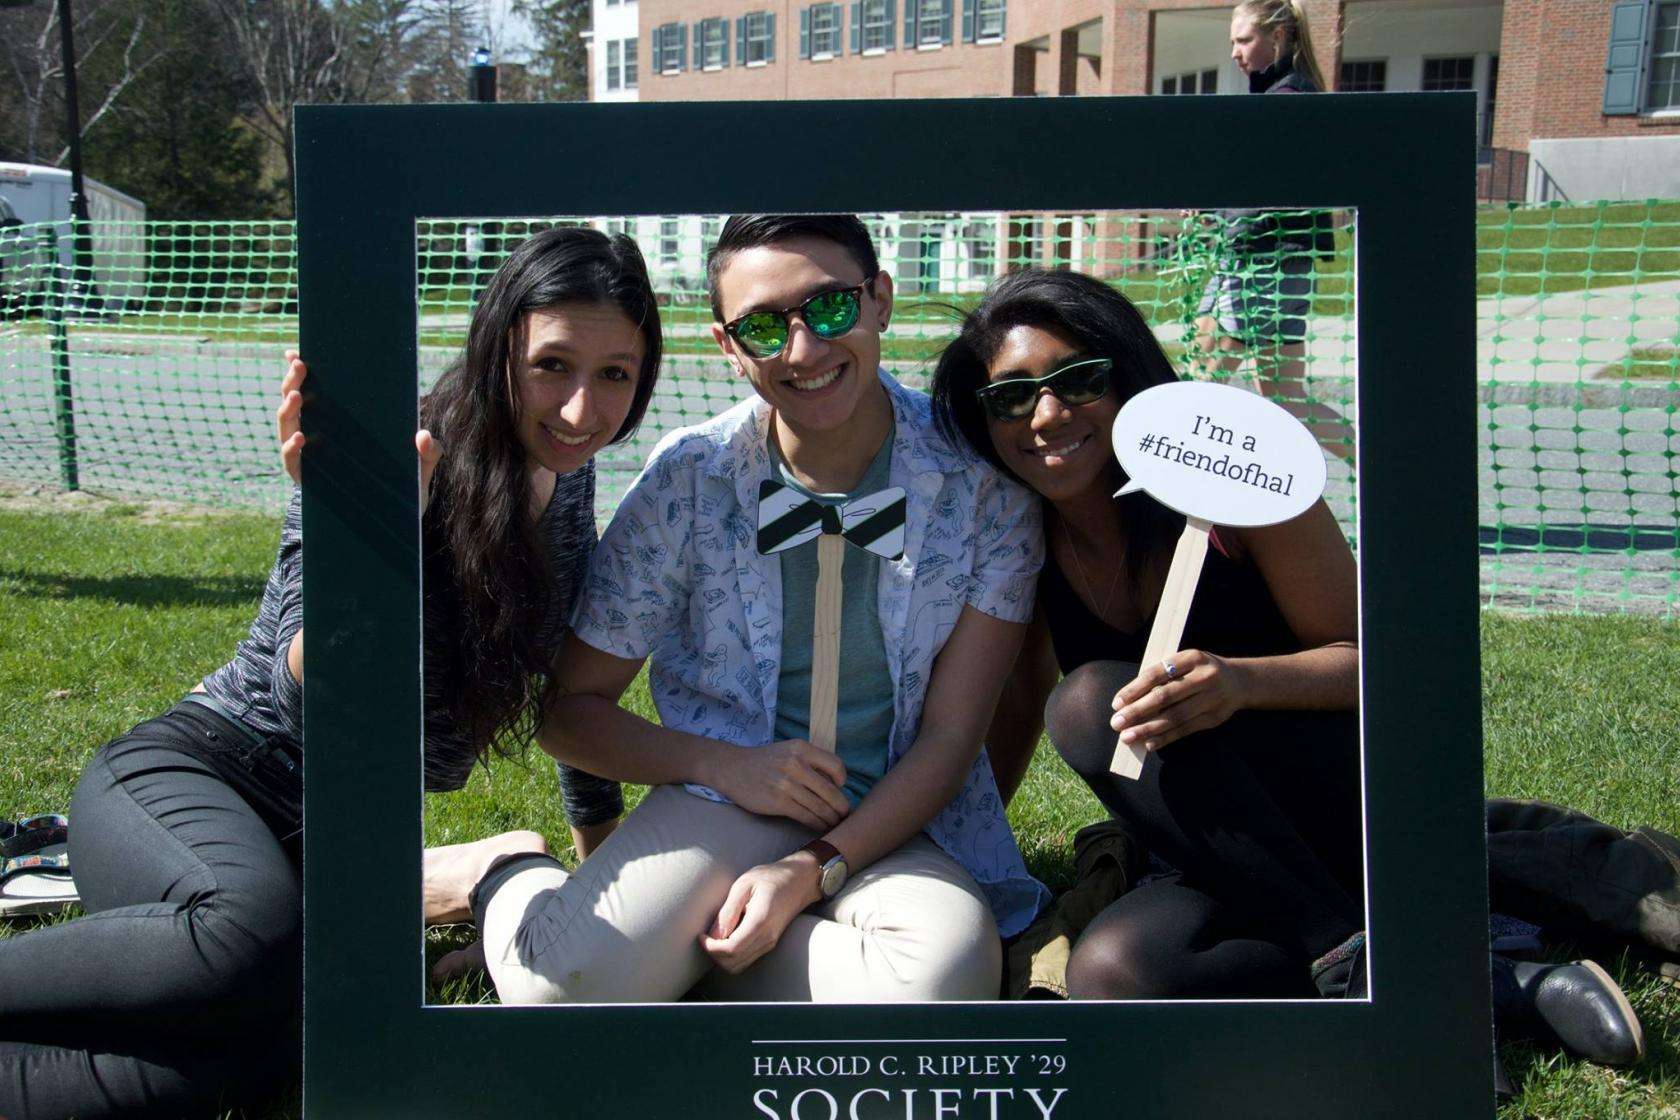 Students in Harold C. Ripley '29 Society photobooth